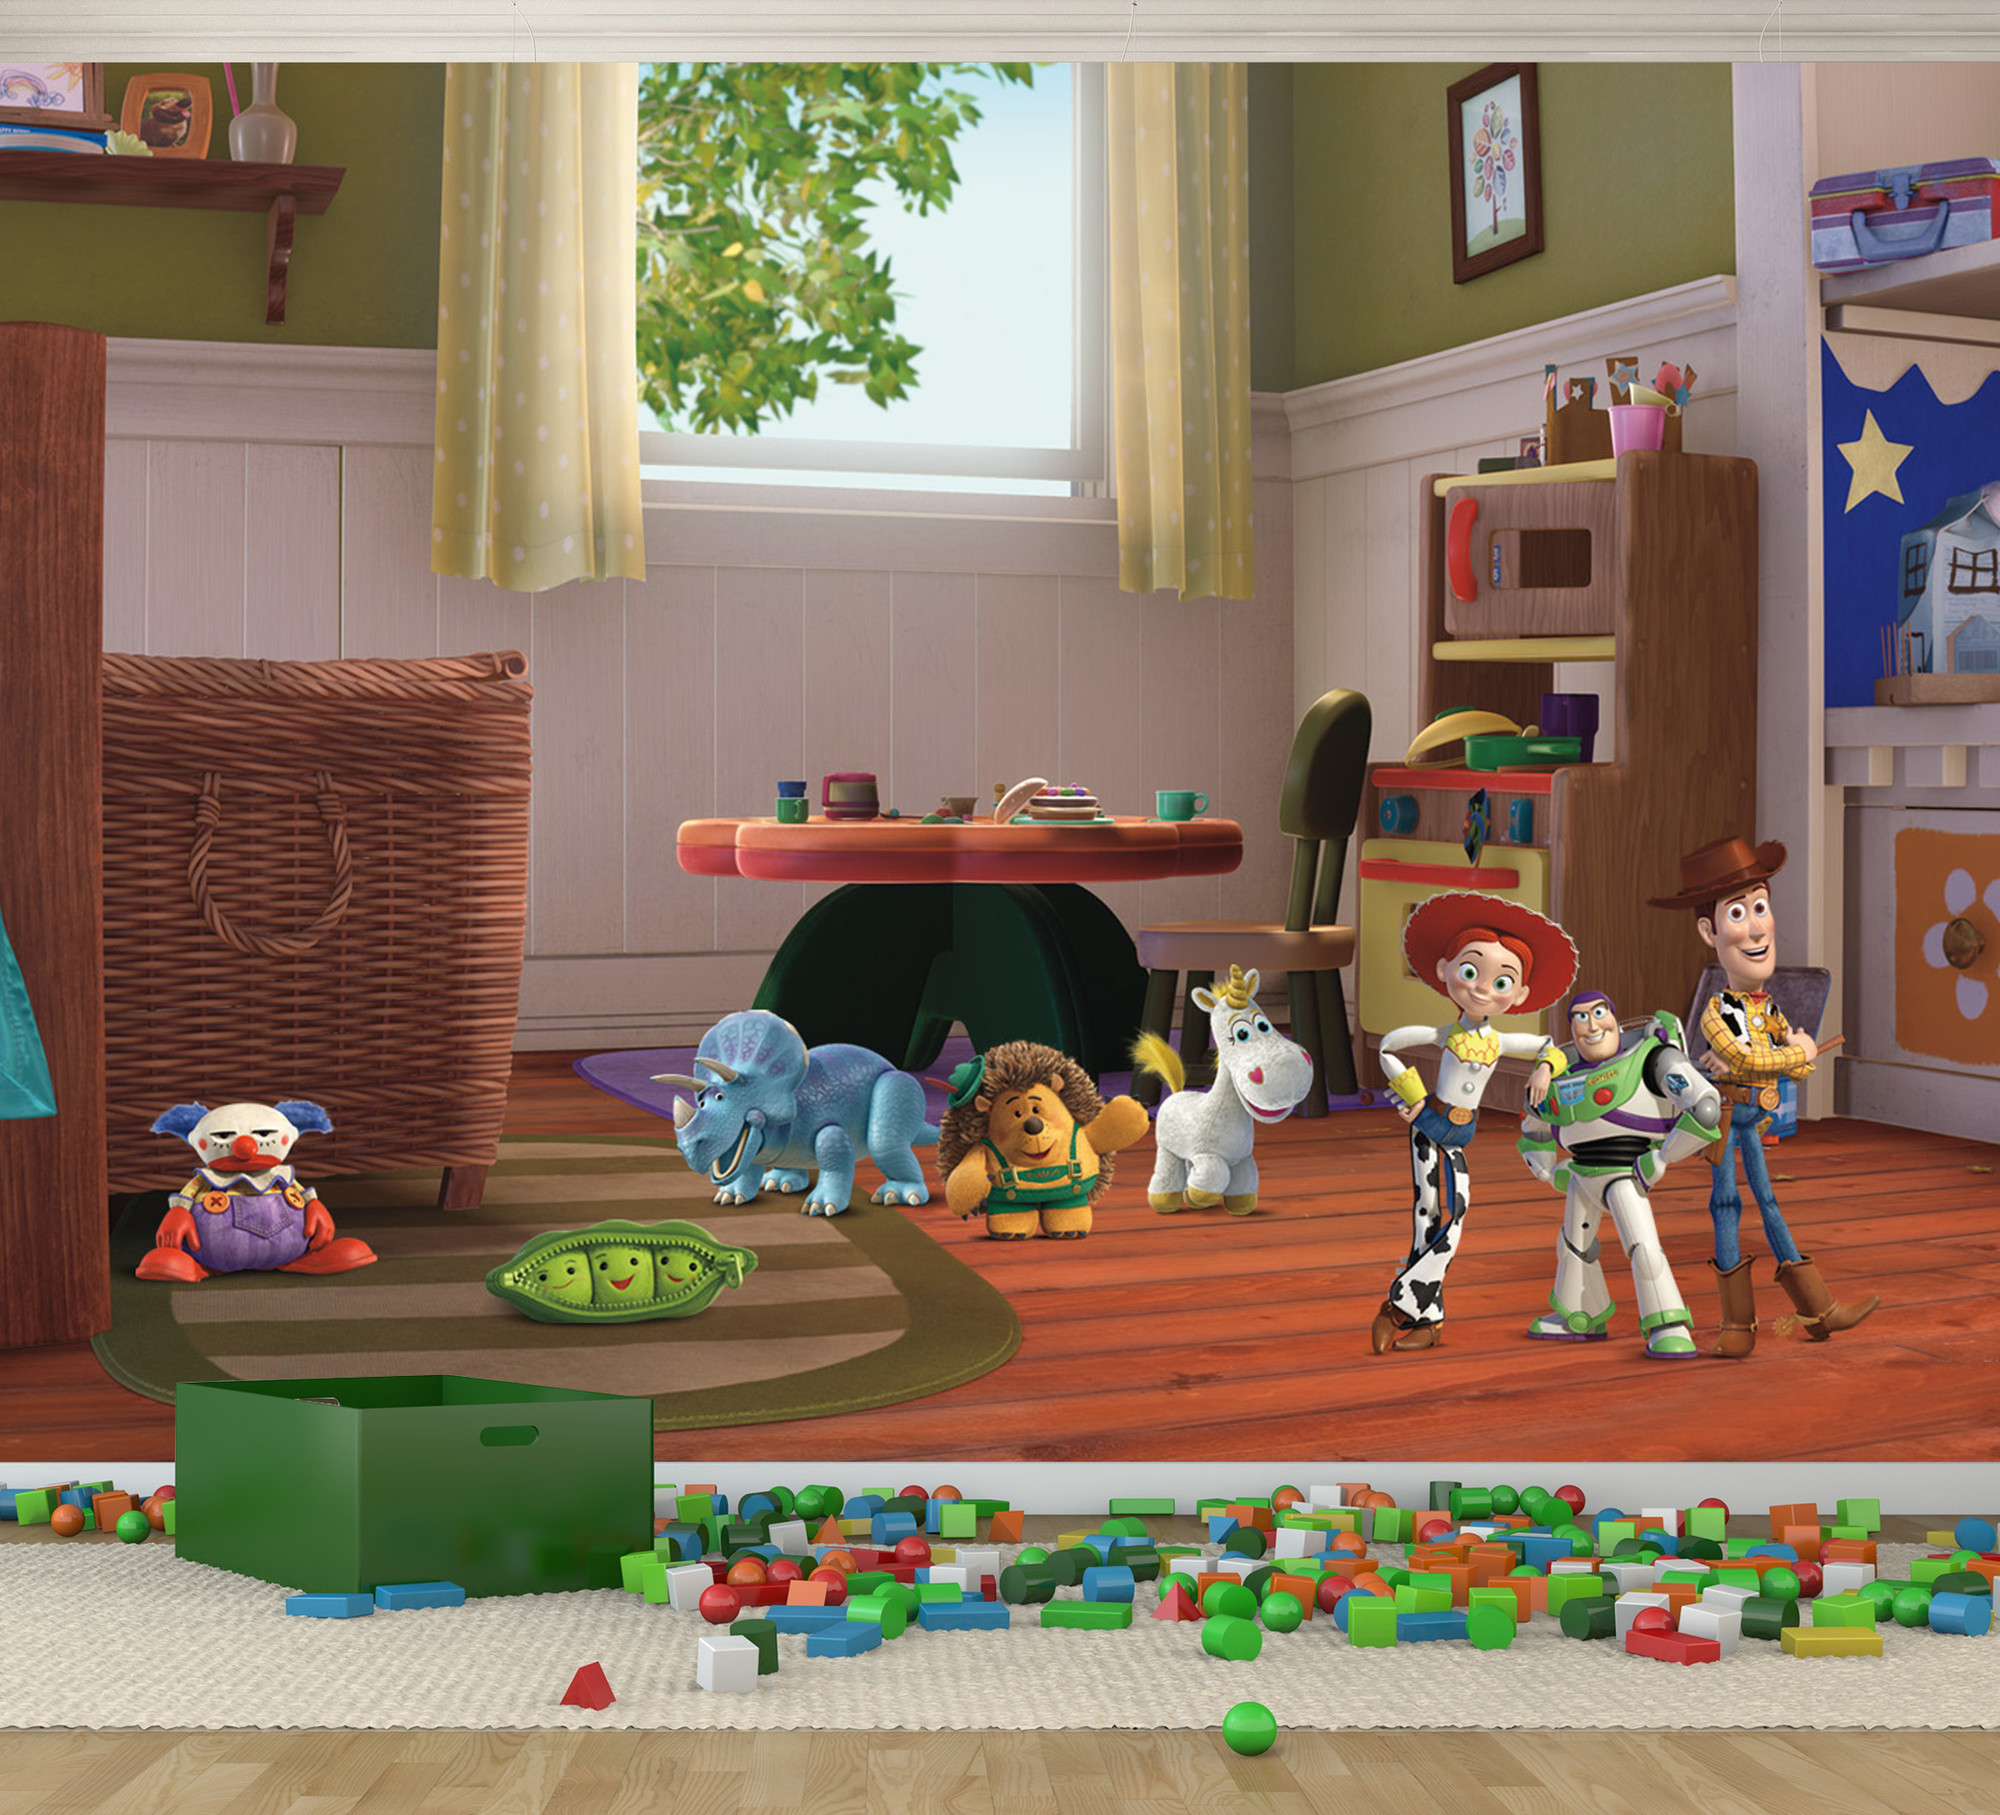 Toy story bonnies room full wall mural temple webster sku part1145 toy story bonnies room full wall mural is also sometimes listed under the following manufacturer numbers tsw004l tsw004m tsw004mini amipublicfo Image collections